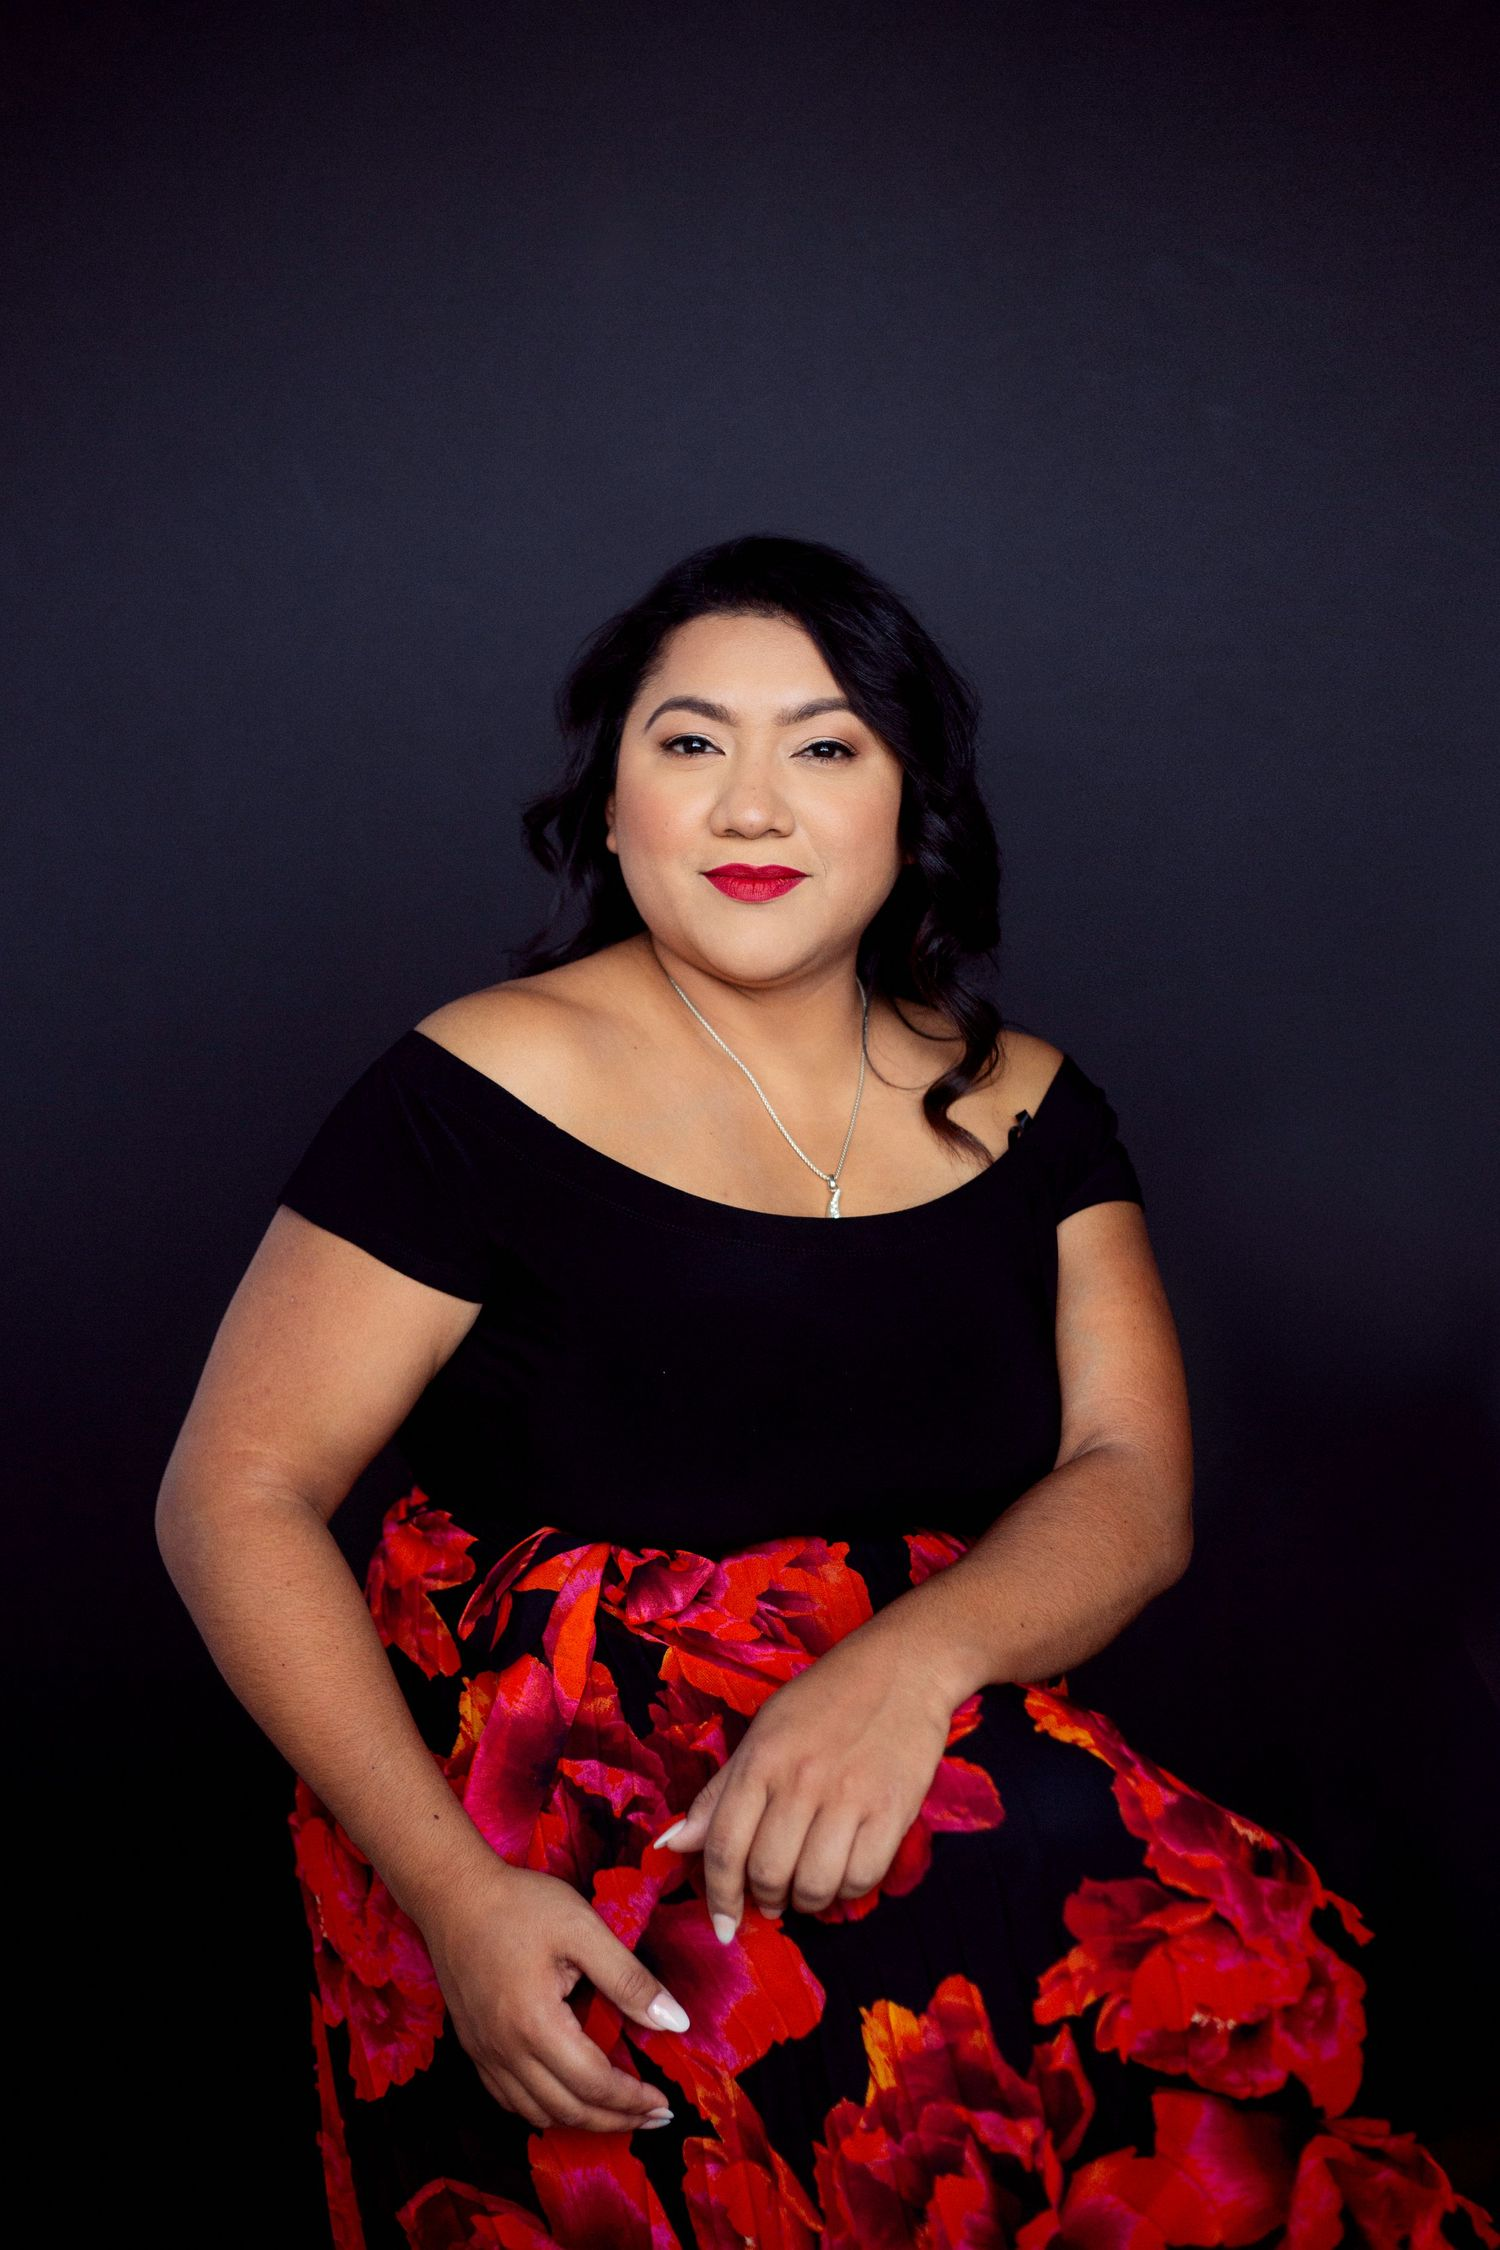 Latina in black and red dress posing for portrait on black background